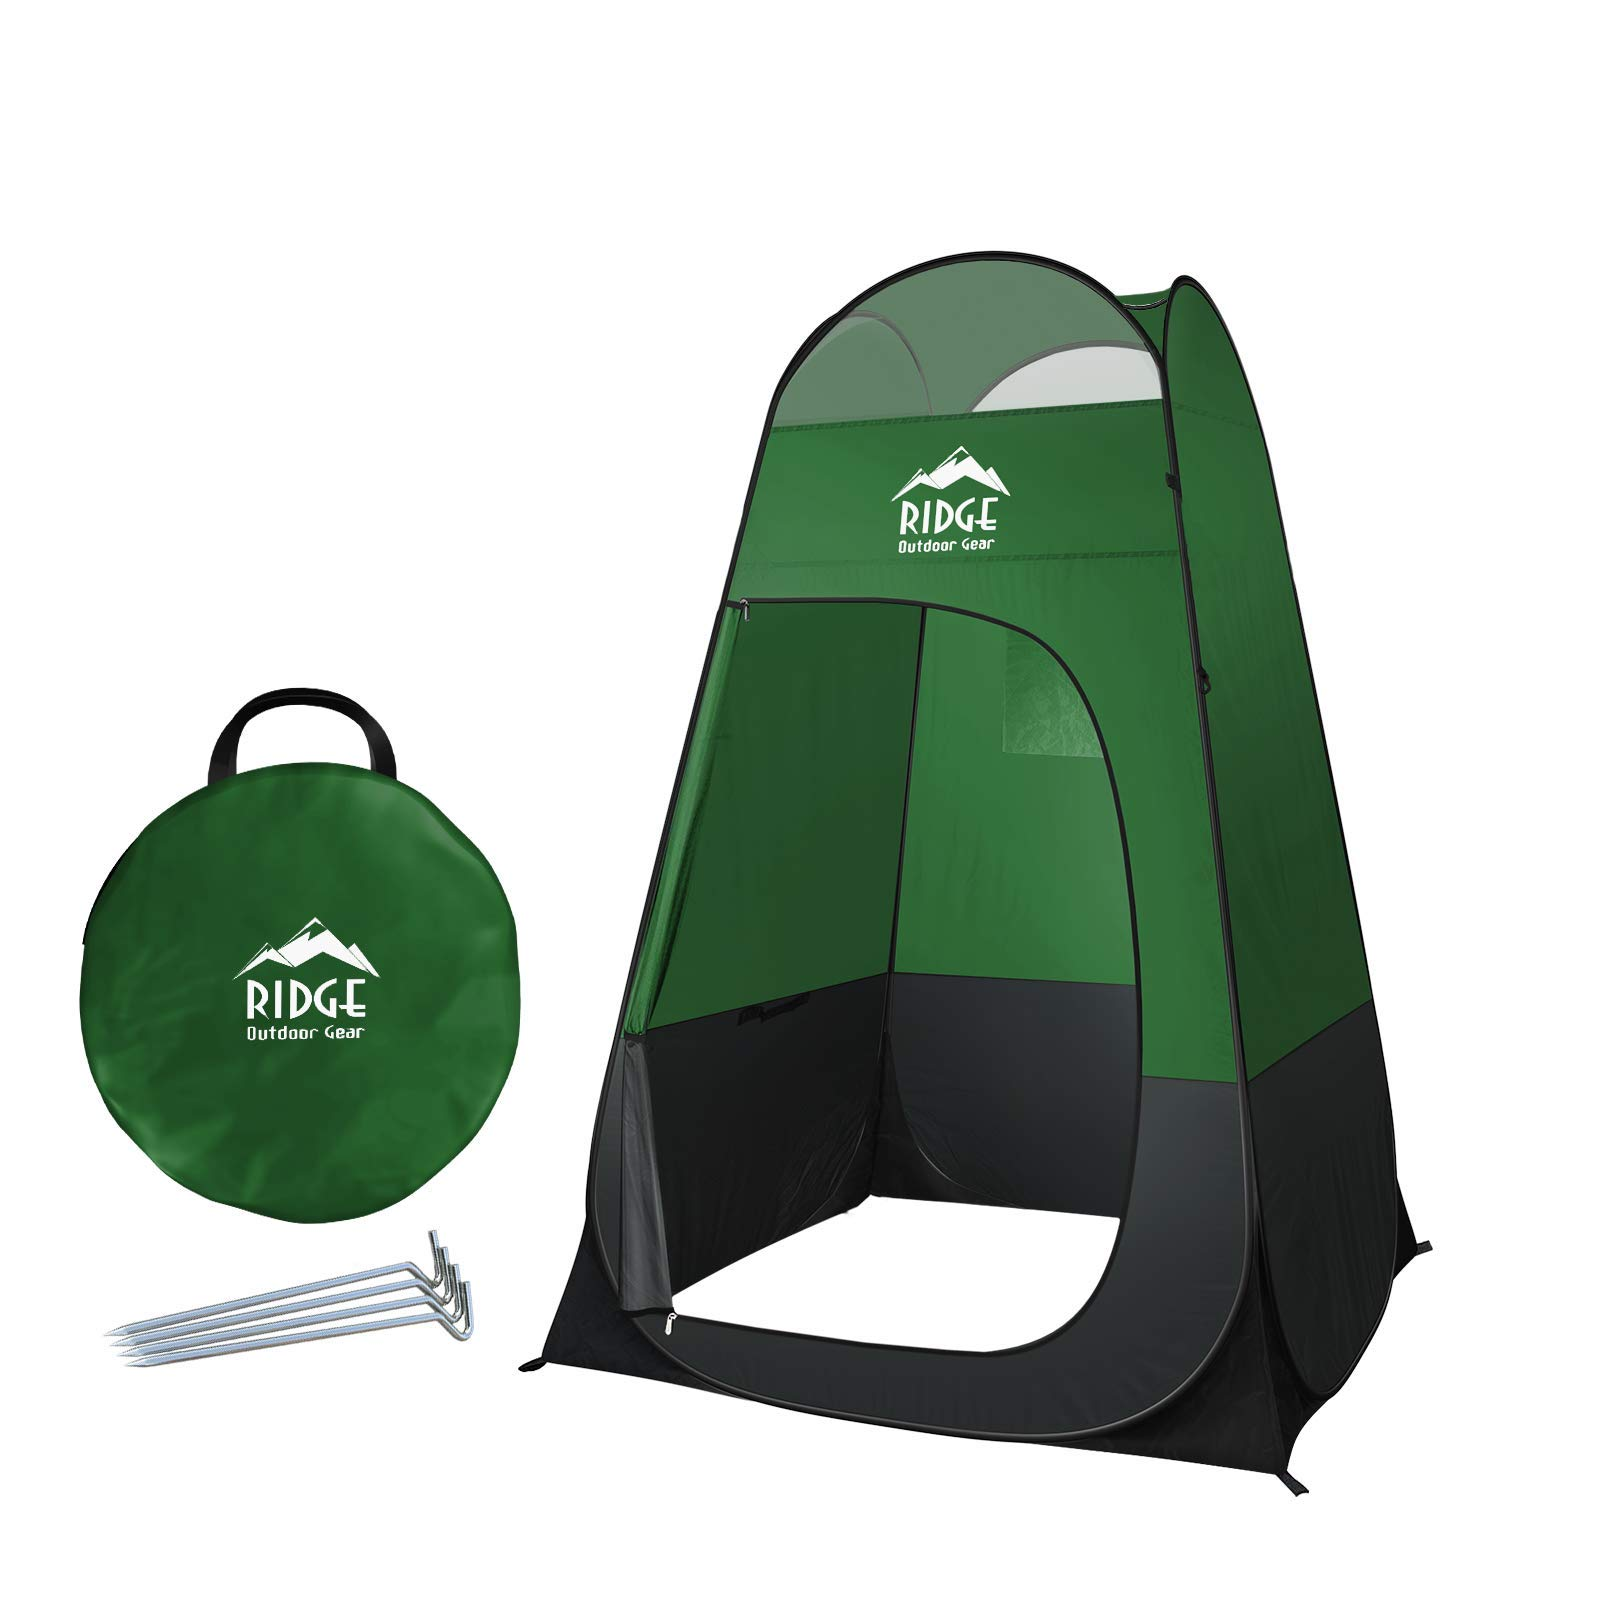 Ridge Outdoor Gear 6.5ft Pop Up Changing Shower Privacy Tent - Portable Utility Shelter Room with rainfly Ground Sheet for Camping Shower Toilet Bathroom Trade Shows Beach Spray tan popup (Green) by Ridge Outdoor Gear